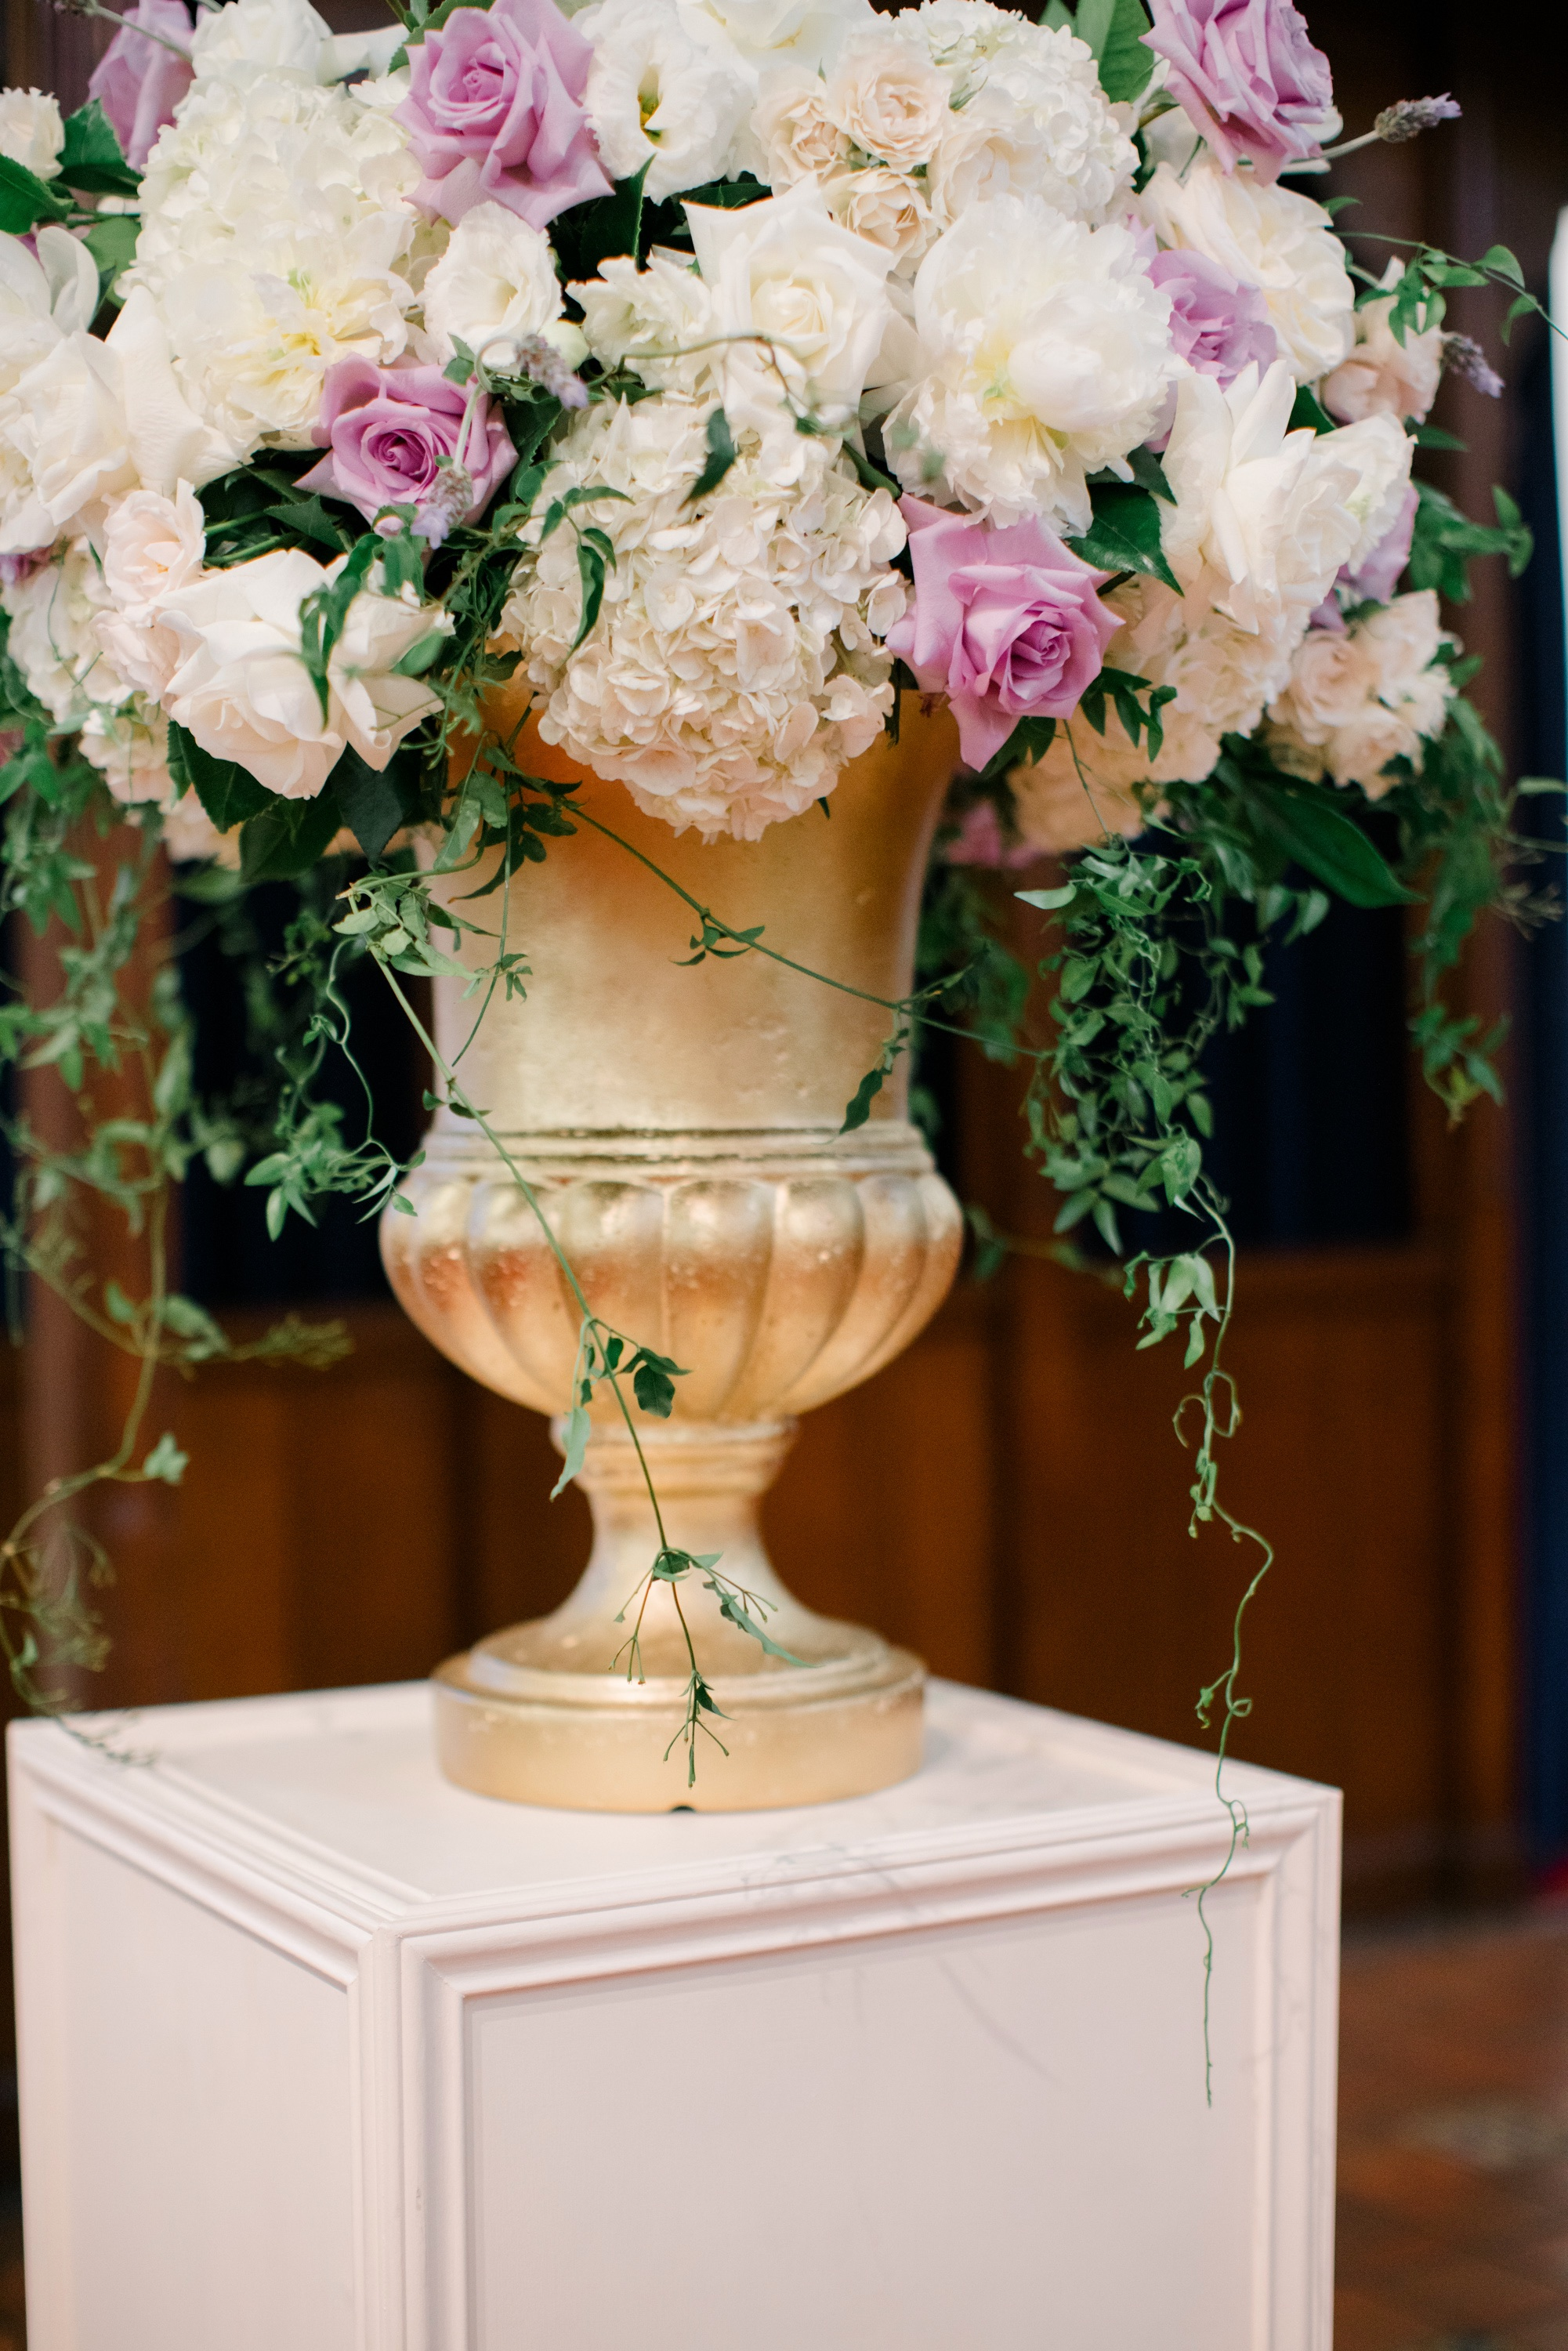 Urns in Varying Colors